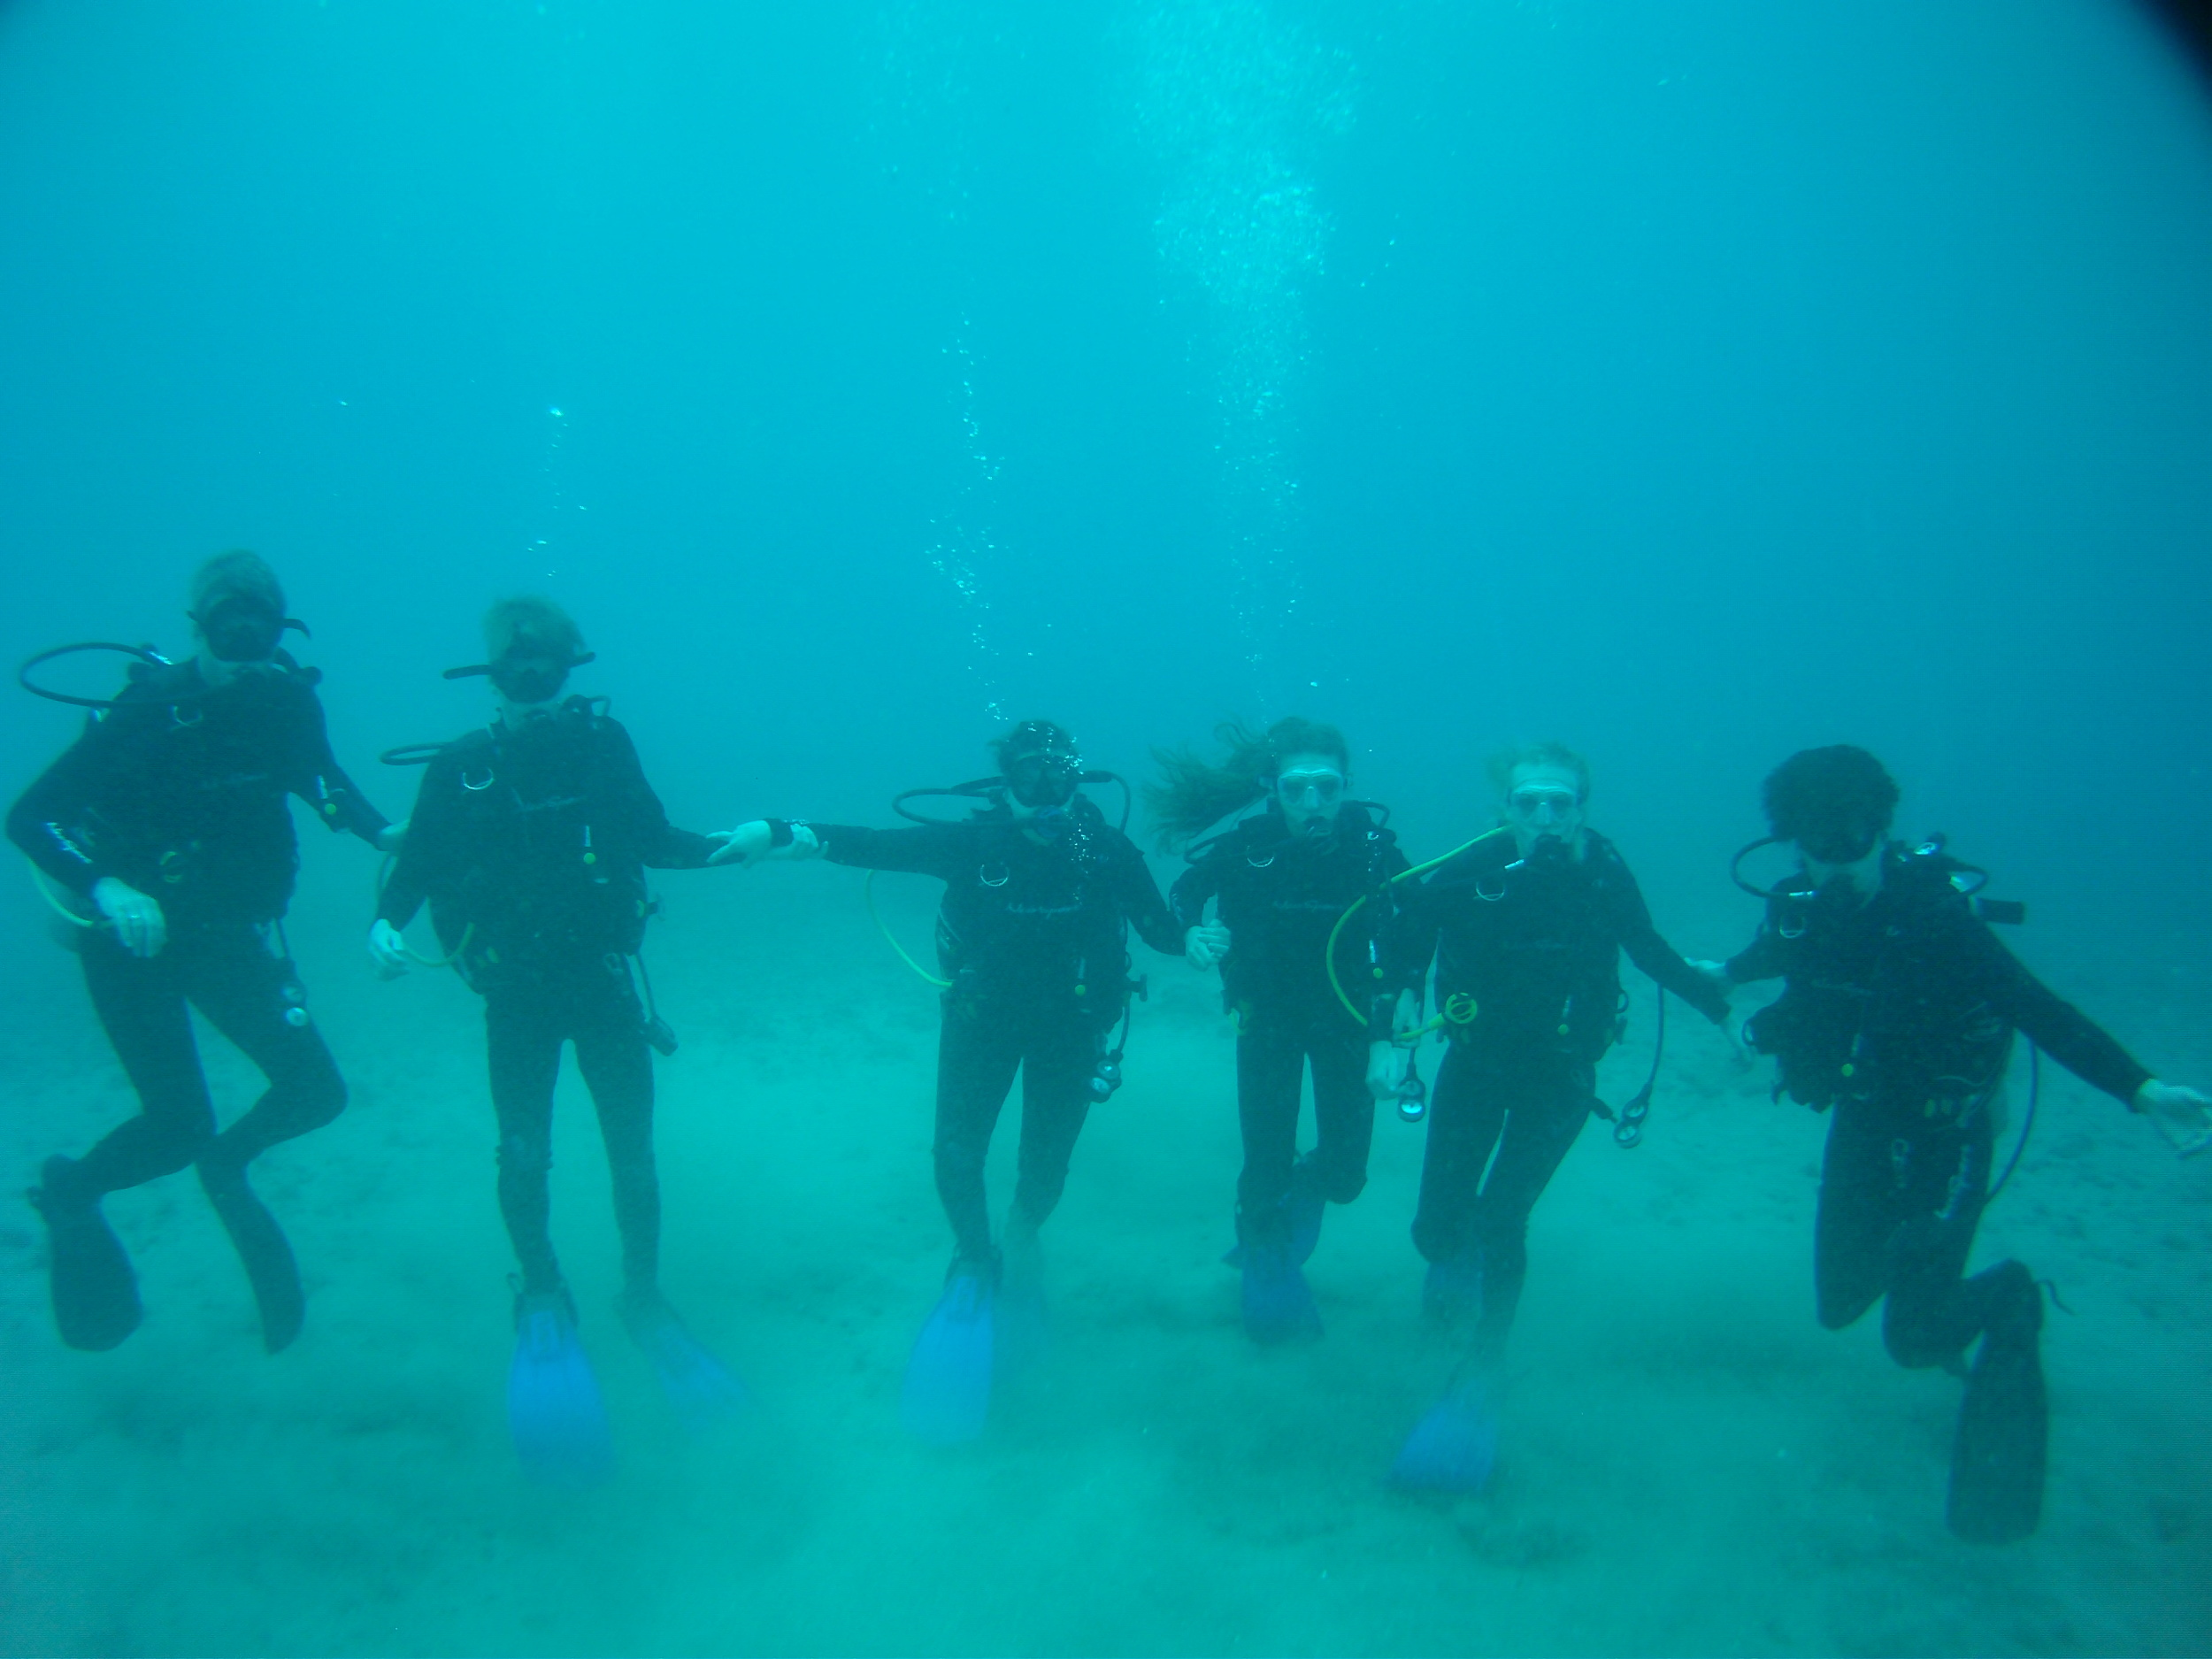 What an experience - 11 meters deep